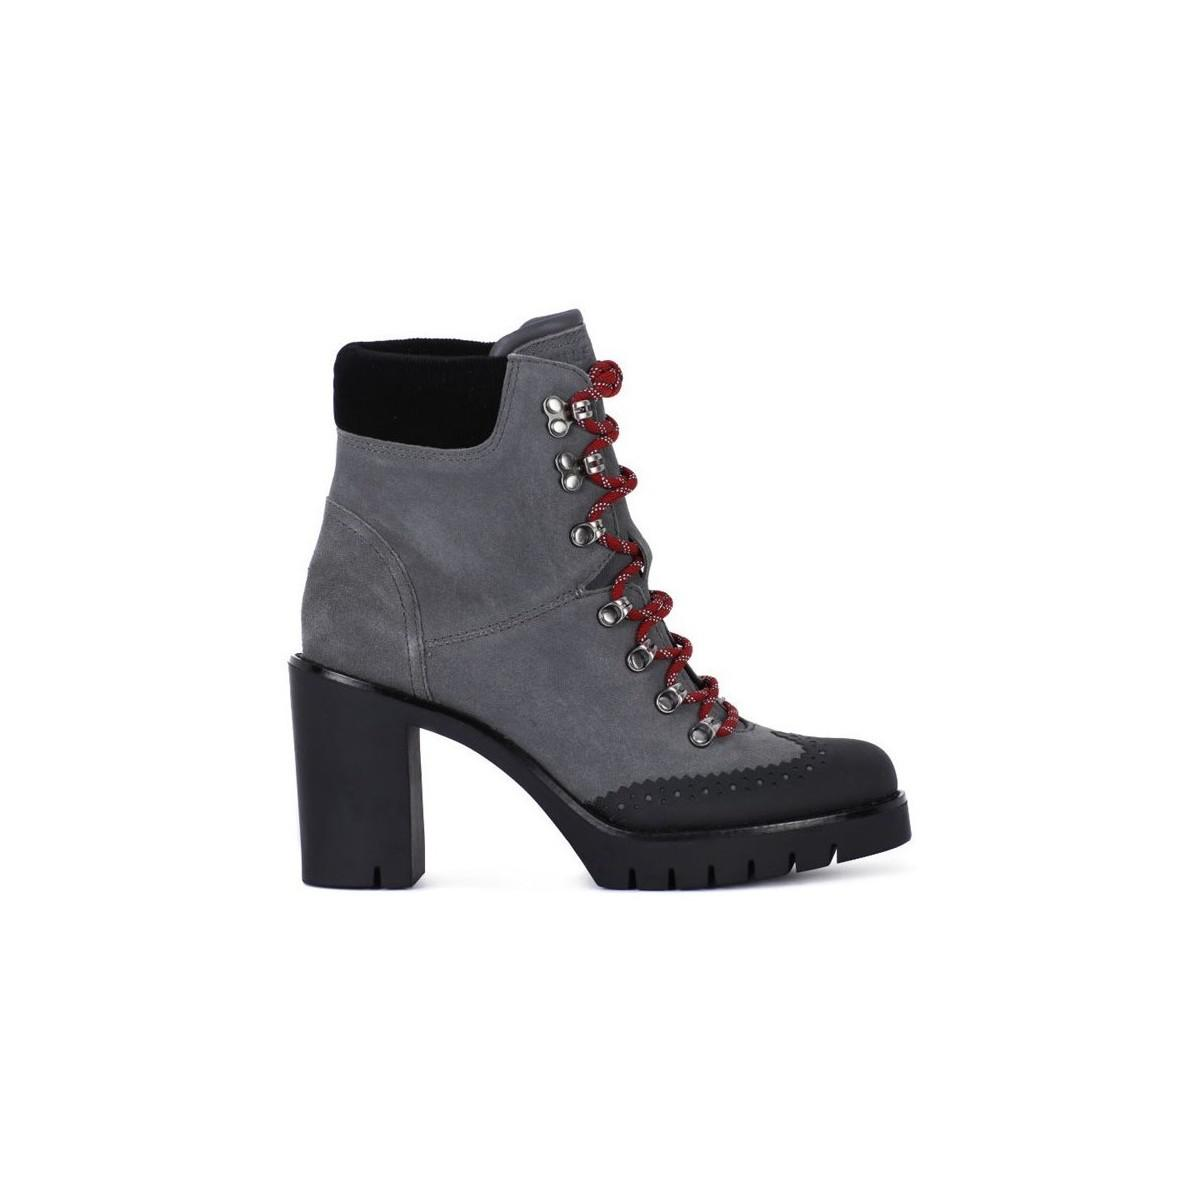 d8308c5c8 Tommy Hilfiger Fw03057008 Women s Low Boots In Grey in Gray - Save ...